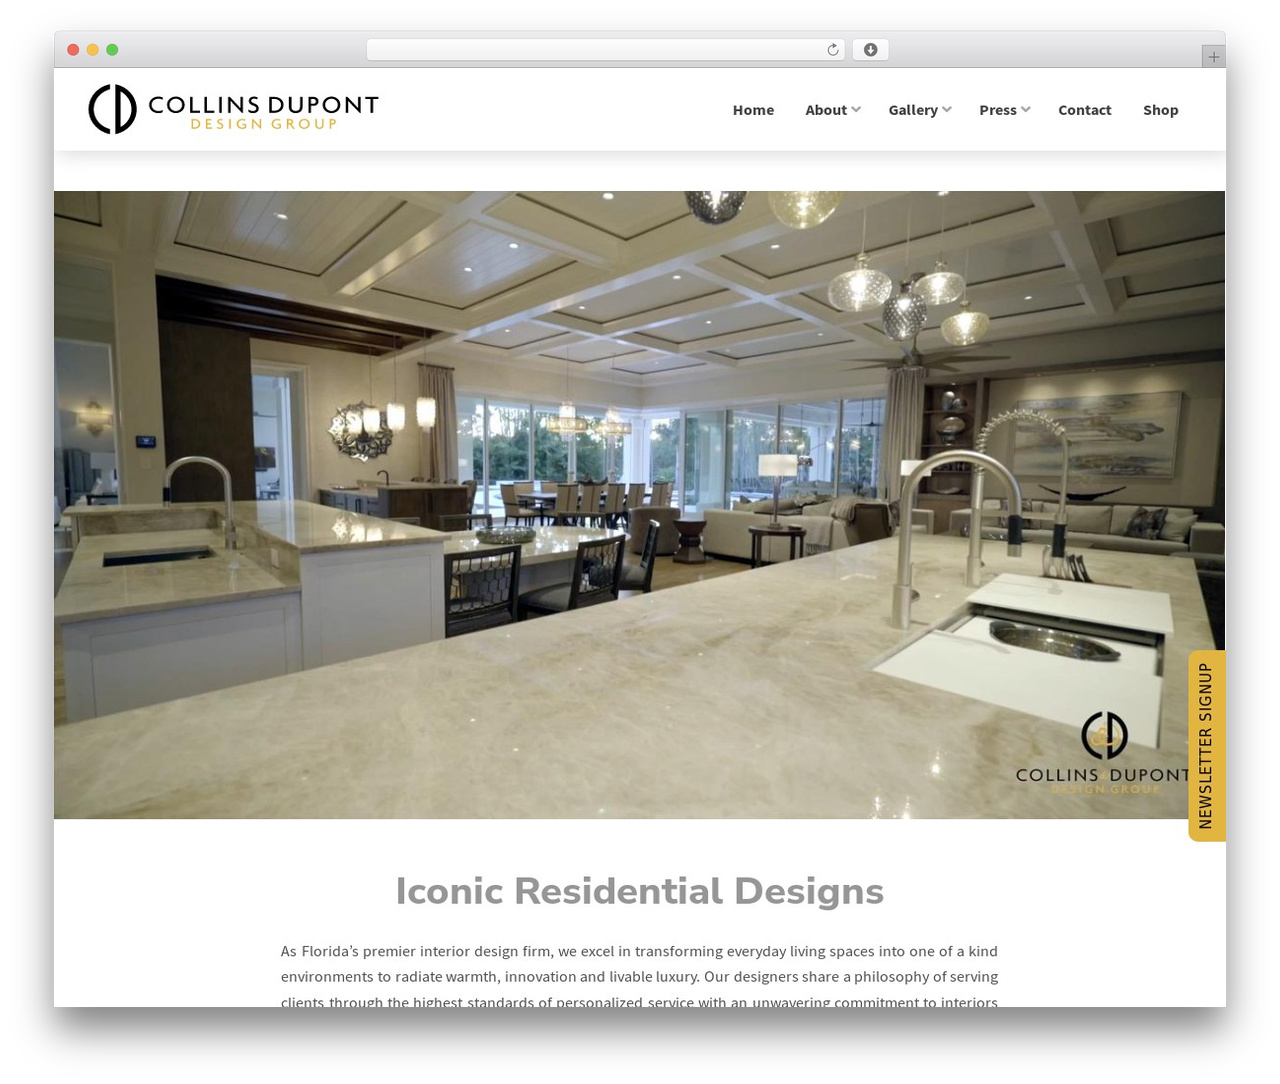 Collins & Dupont Design Group wordpress website template pro by themeco - collins-dupont